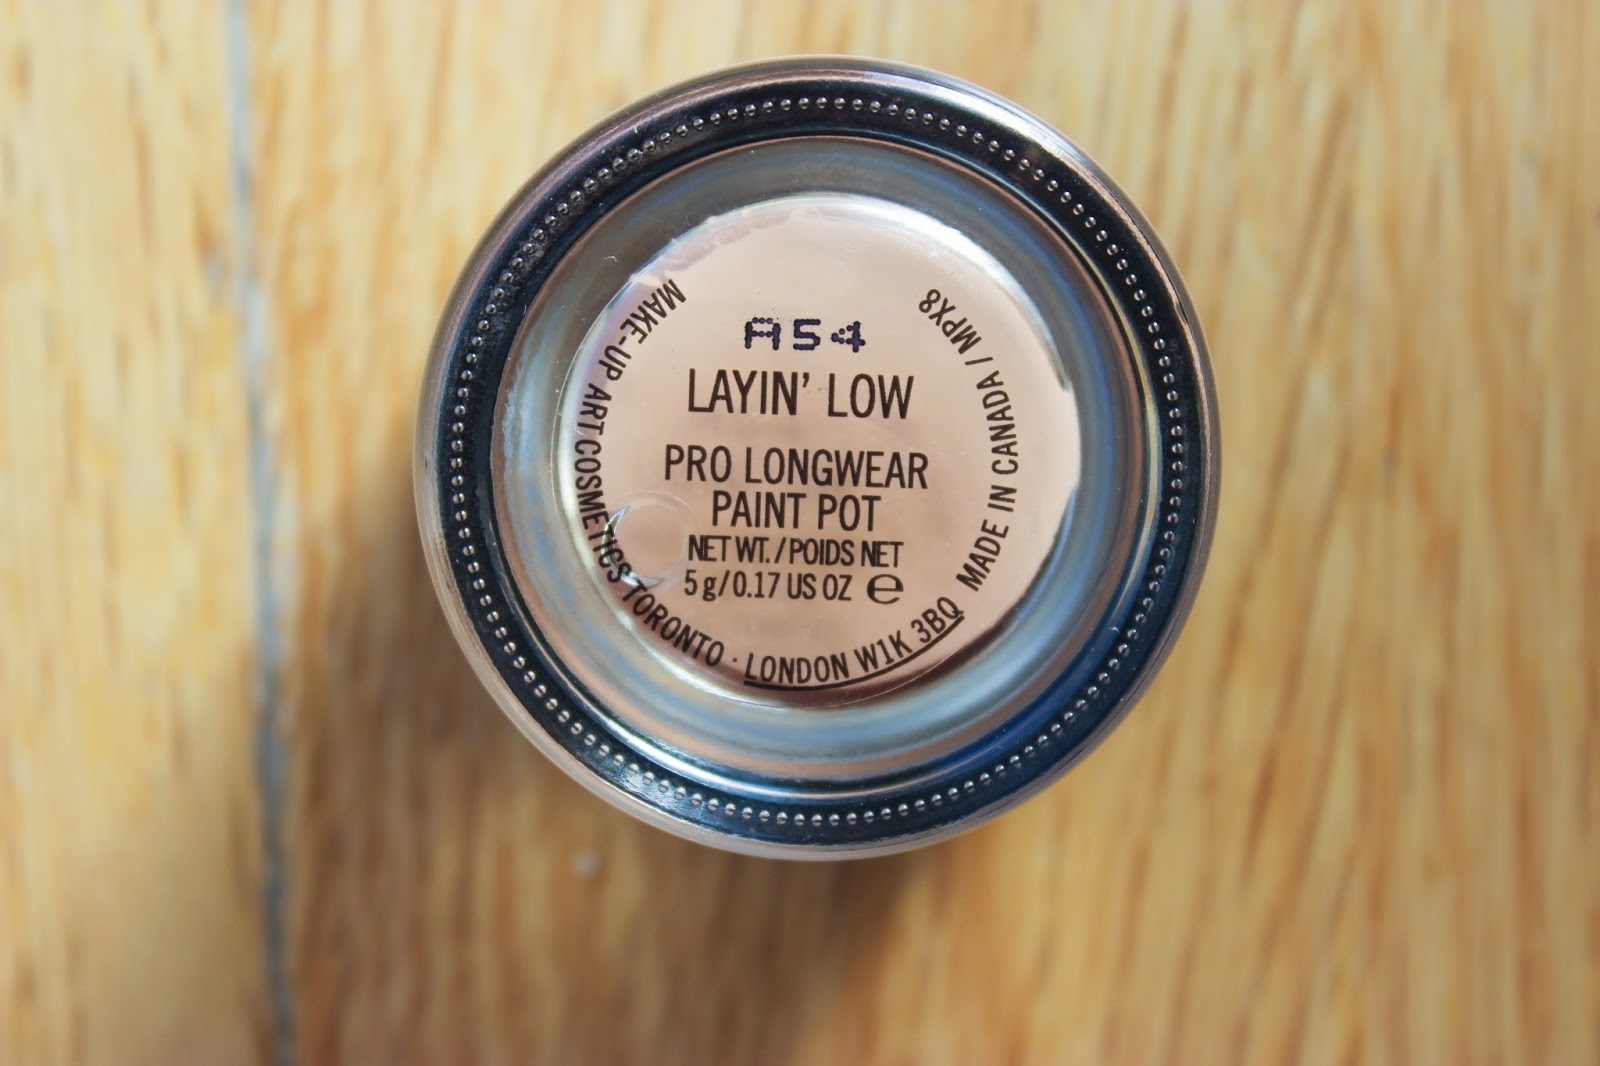 MAC Pro Longwear Paint Pot Layin' Low DiscoveriesOfSelf Blog NC50 Beauty Bloggers